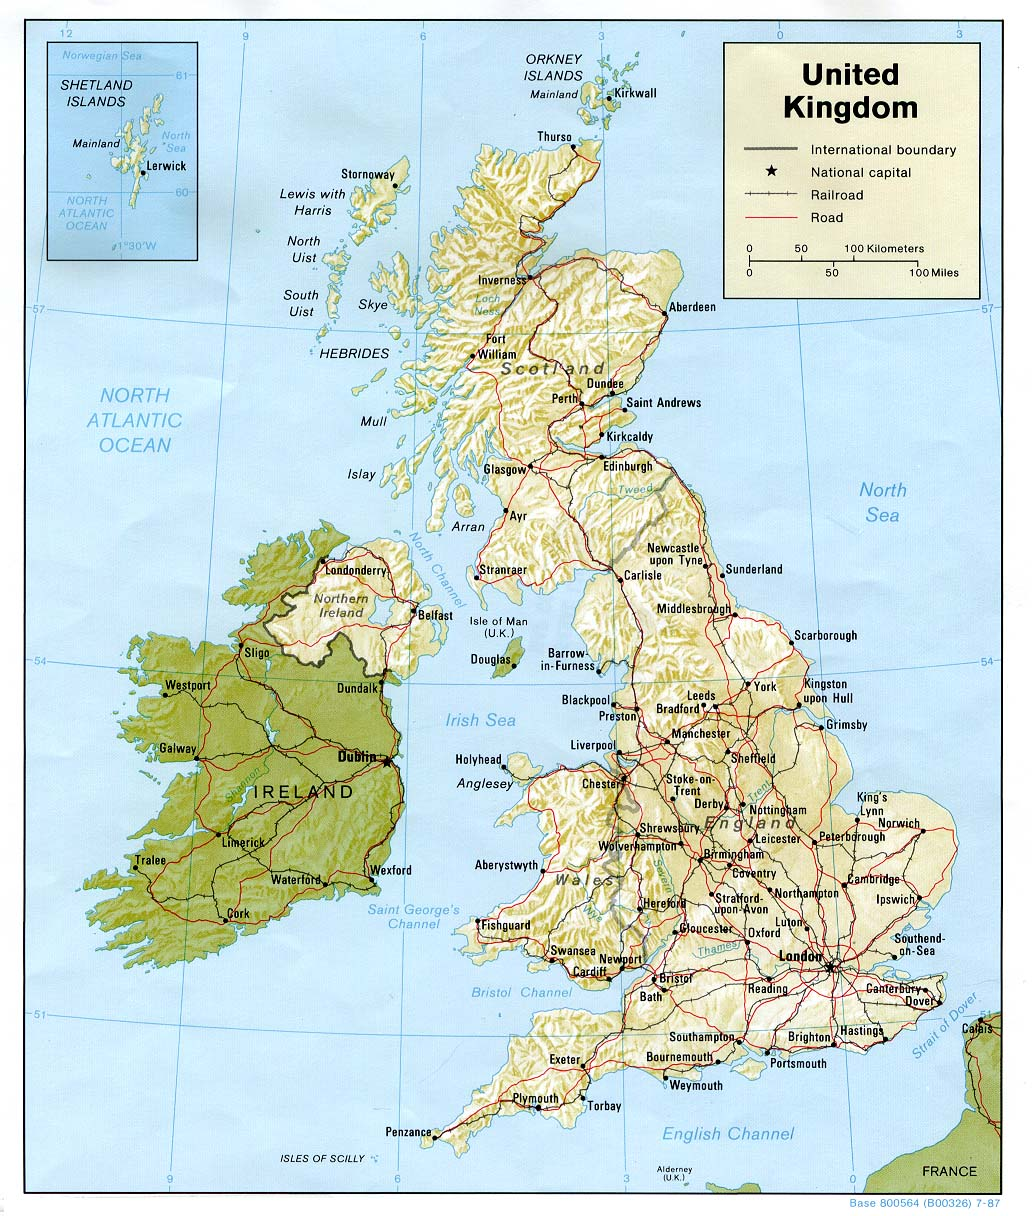 Map Of Uk Roads.Maps Of United Kingdom Of Great Britain And Northern Ireland Map